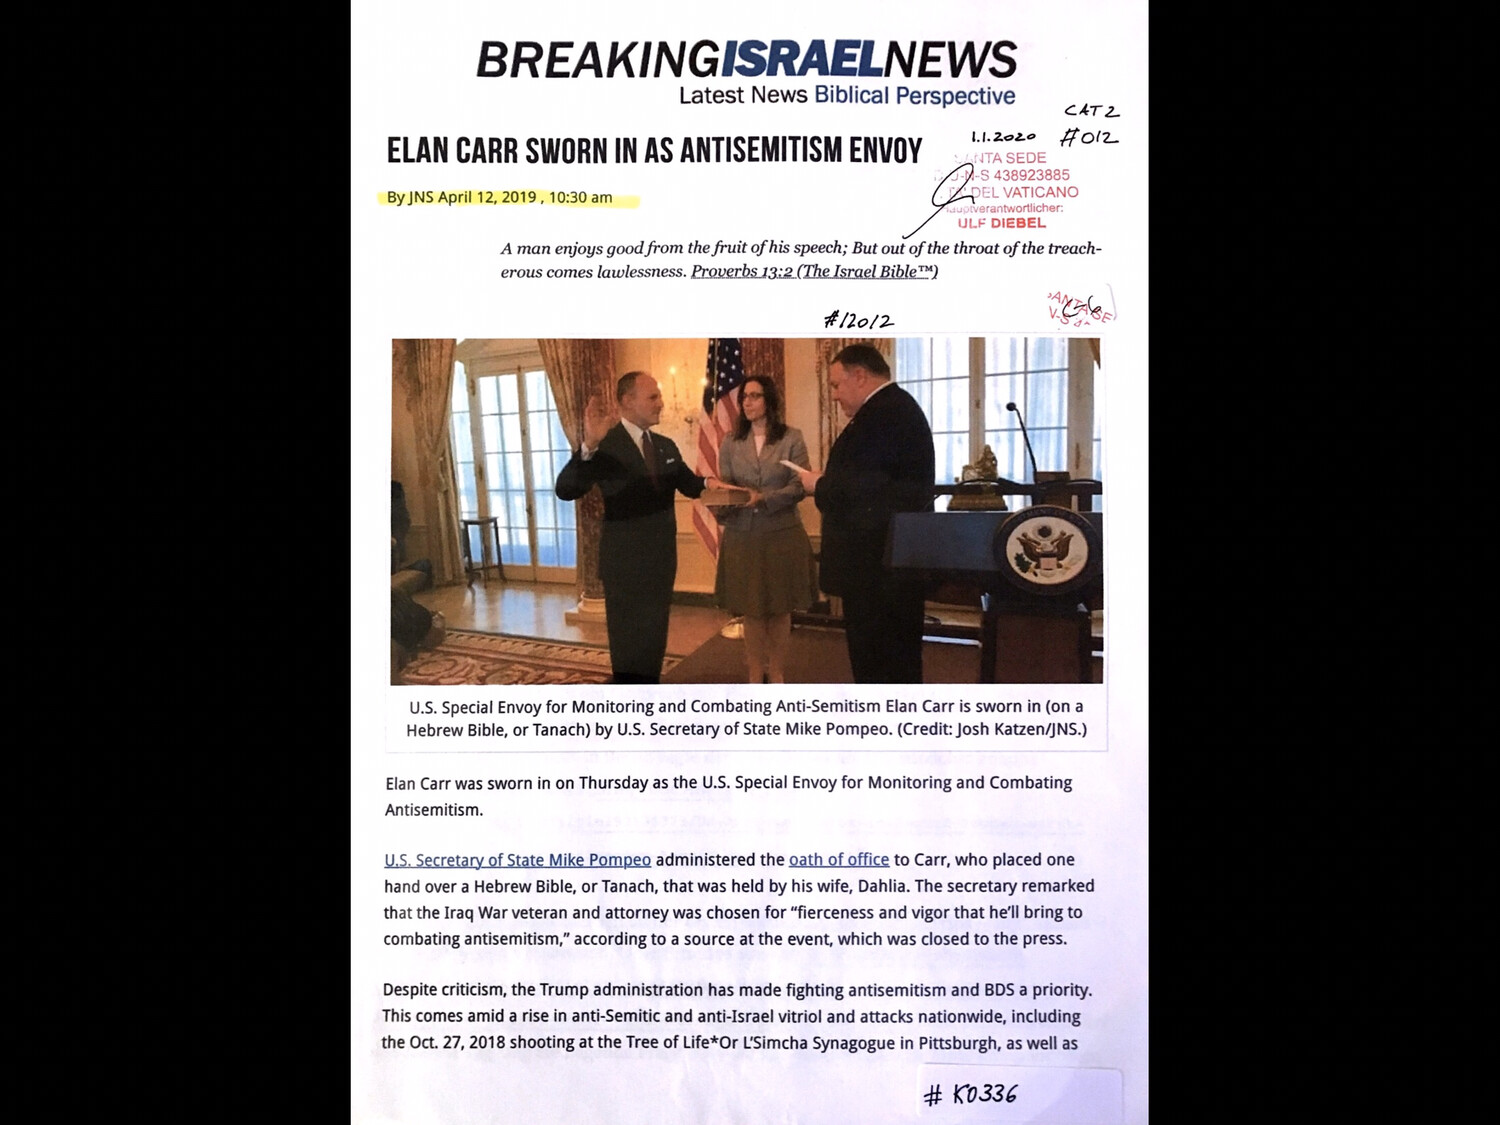 #K0336 - Breaking Israel News - Elan Carr sworn in as antisemitism envoy